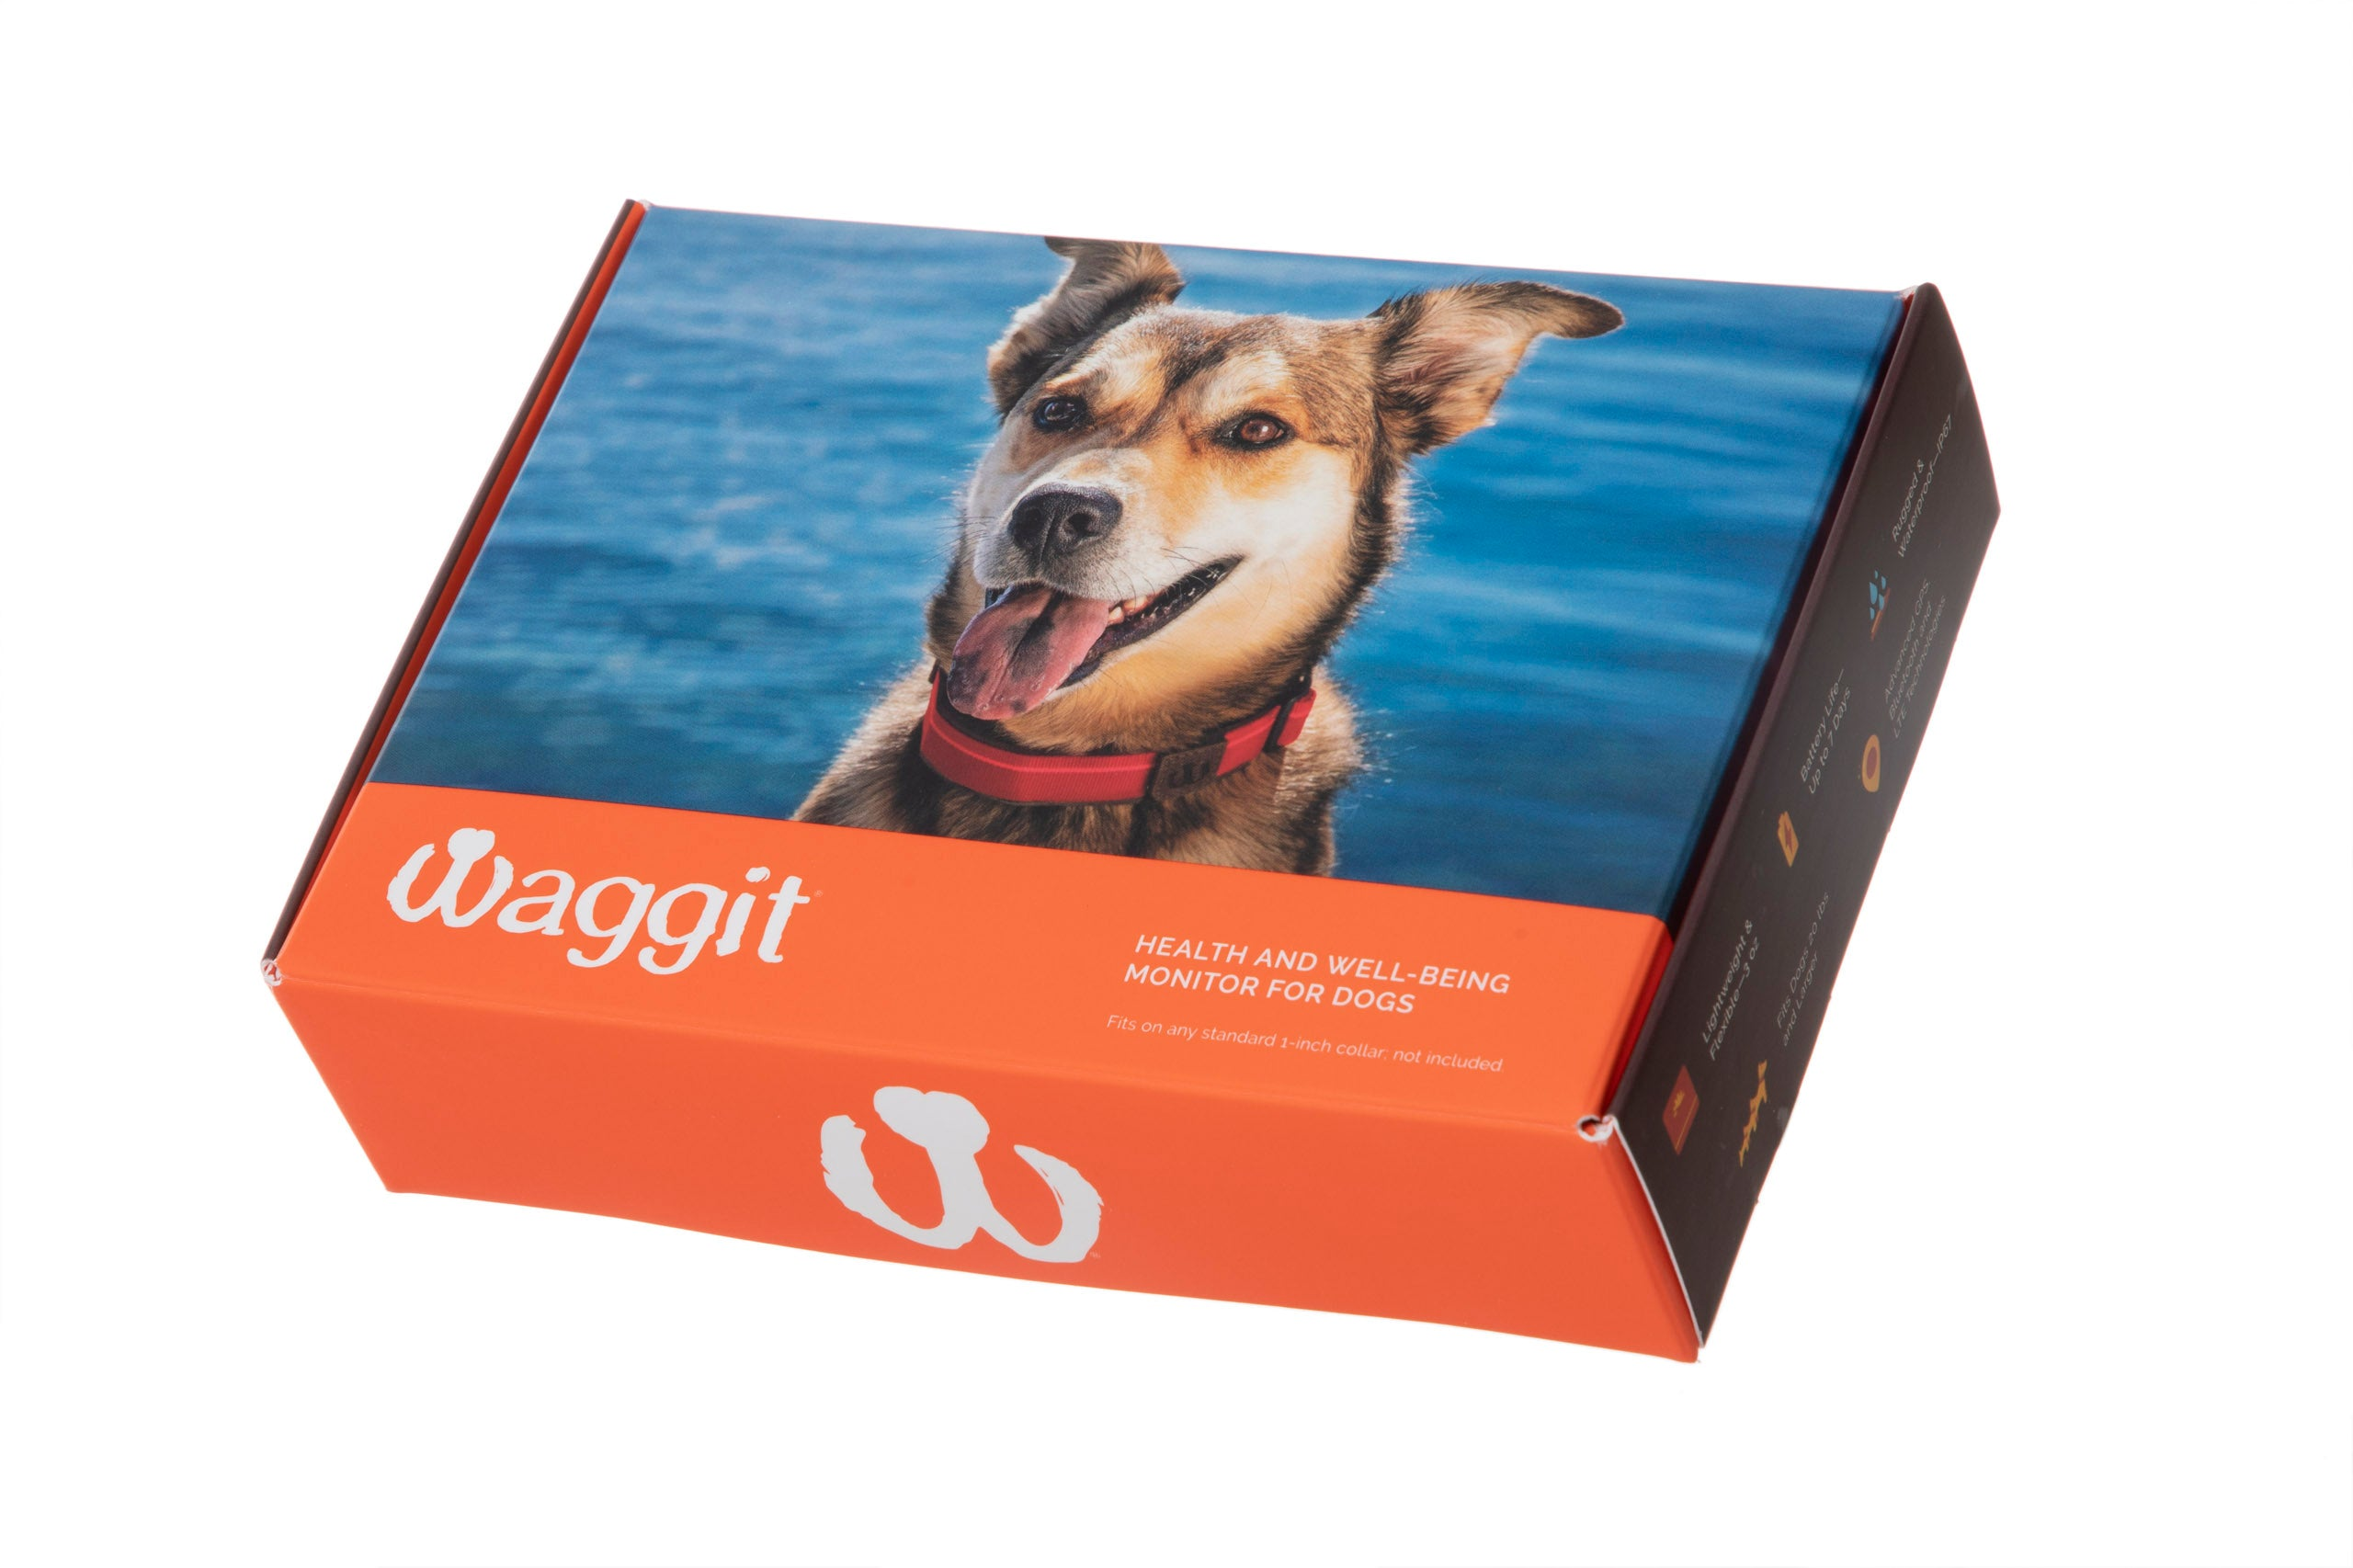 Waggit Smart Health and GPS Tracker - 3 Dogs